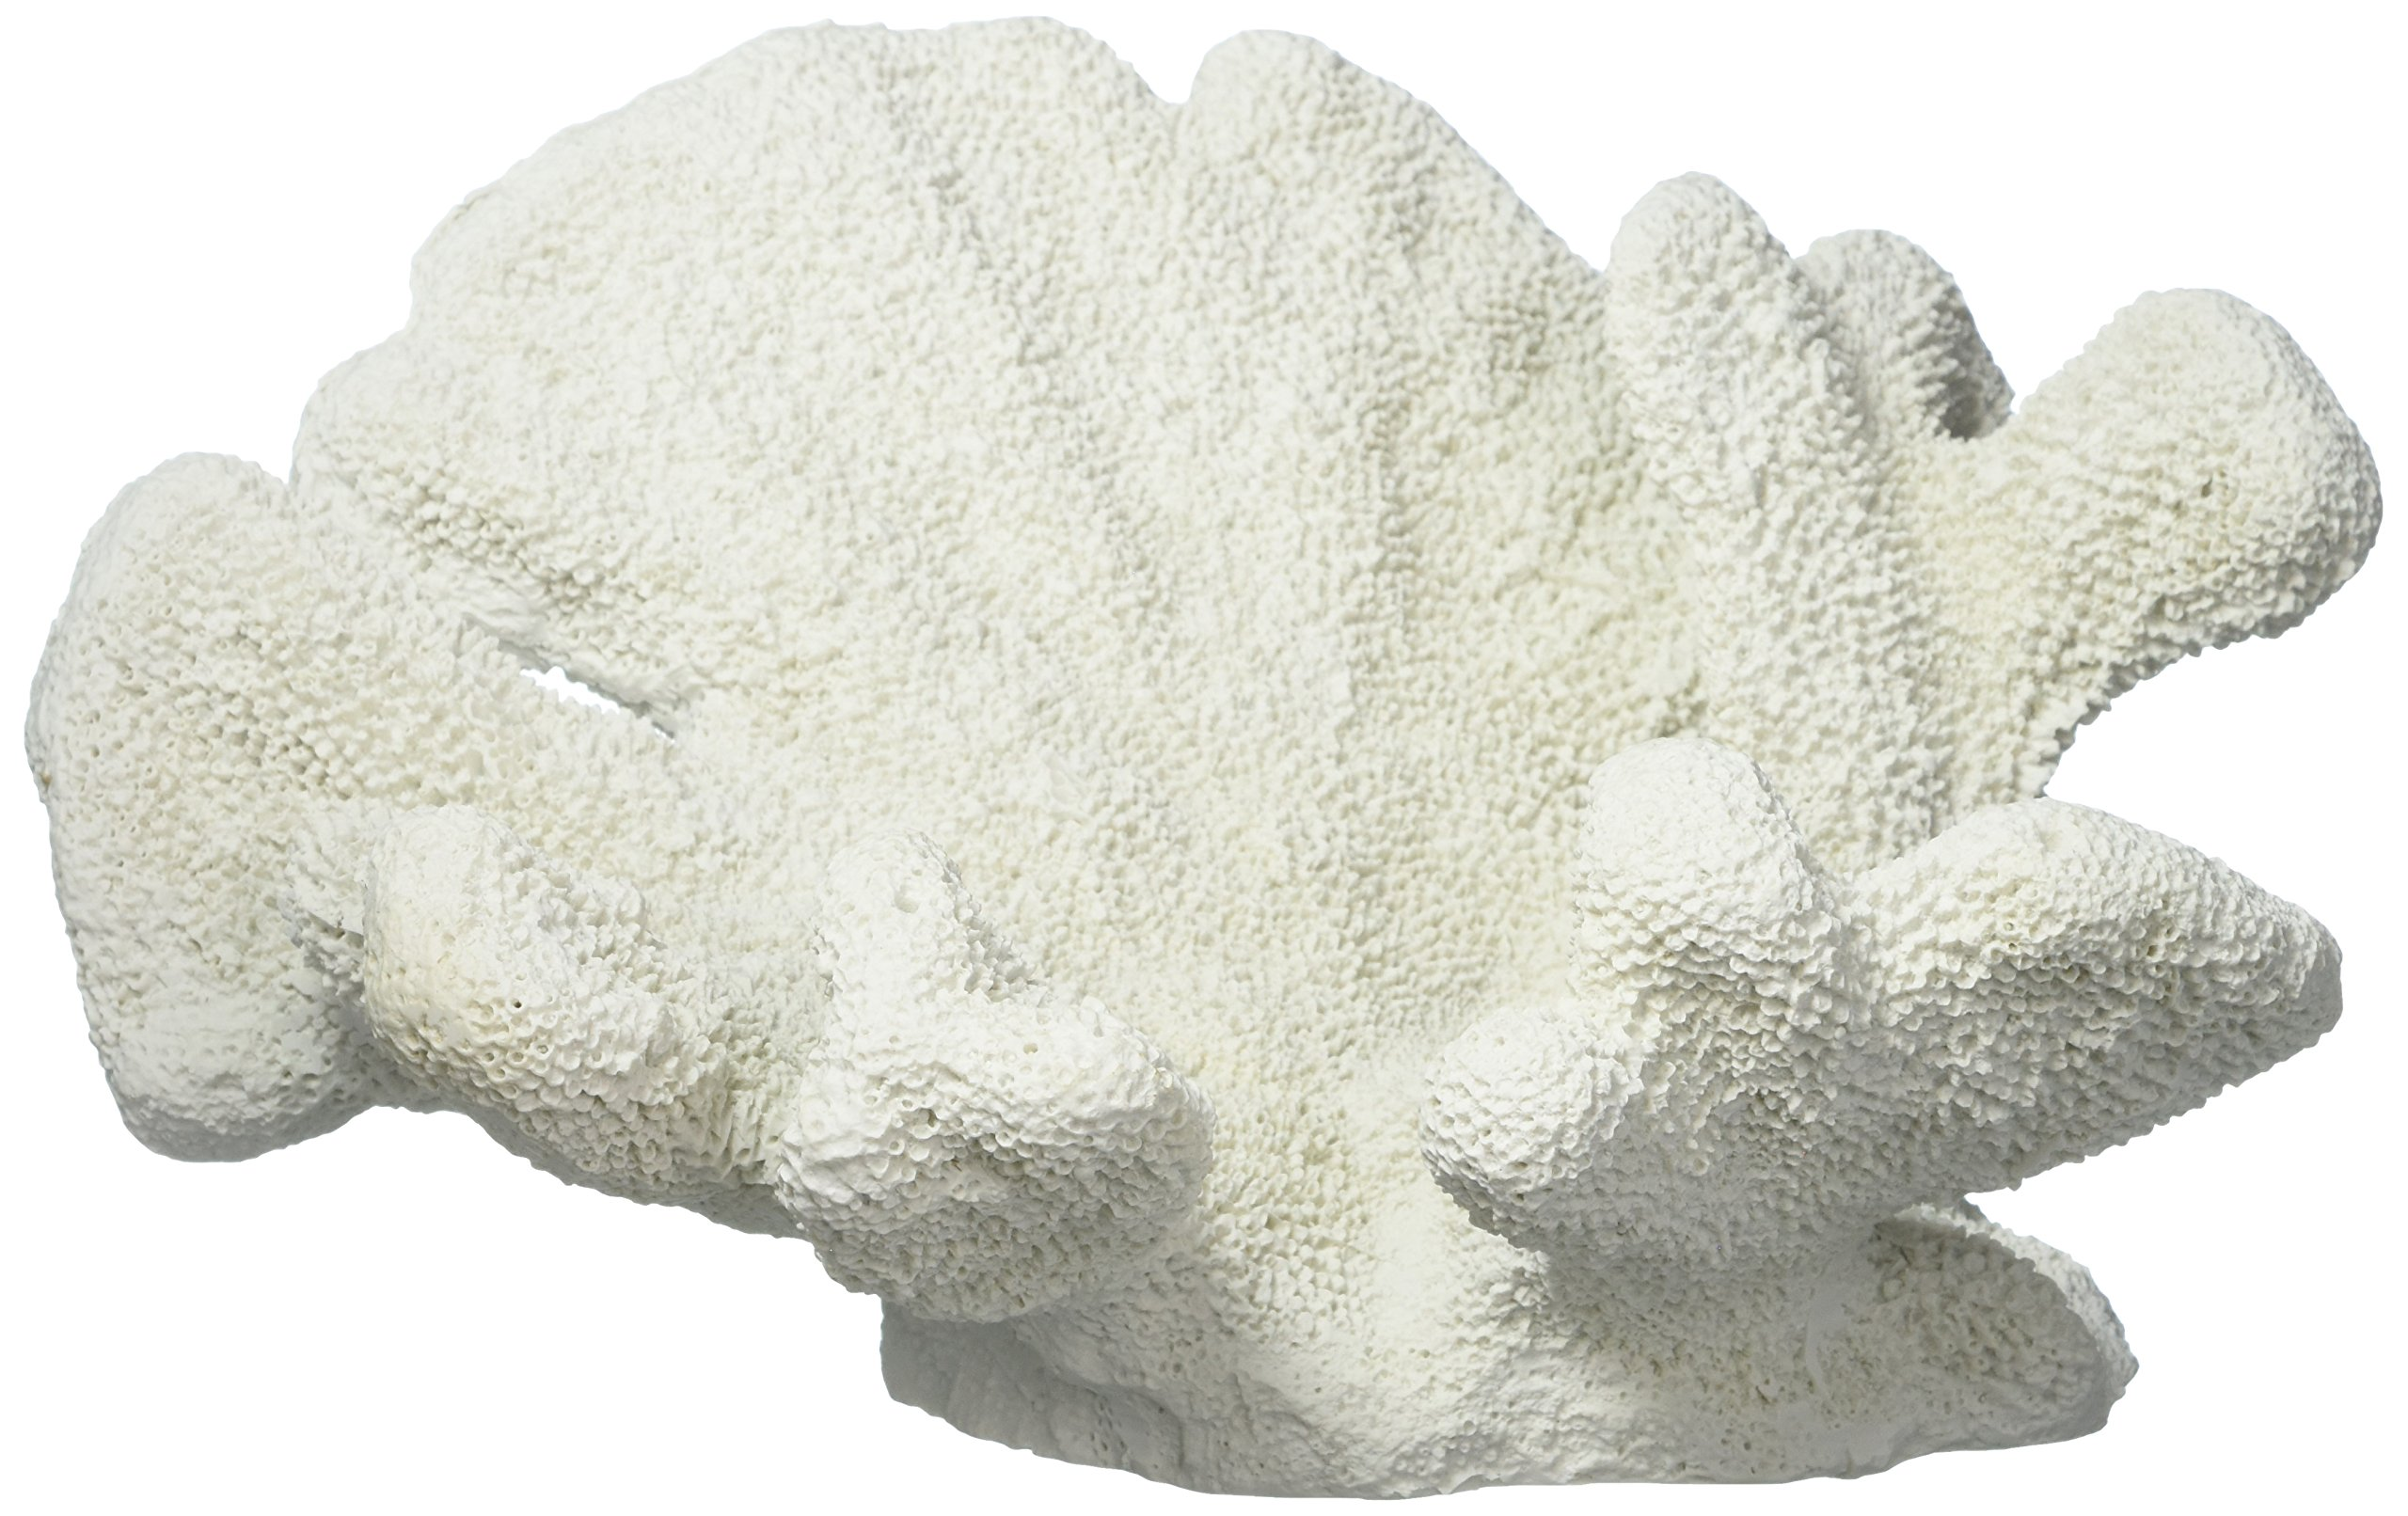 Deep Blue Professional ADB80050 Cats Paw Coral for Aquarium, 10 by 9 by 5.5-Inch